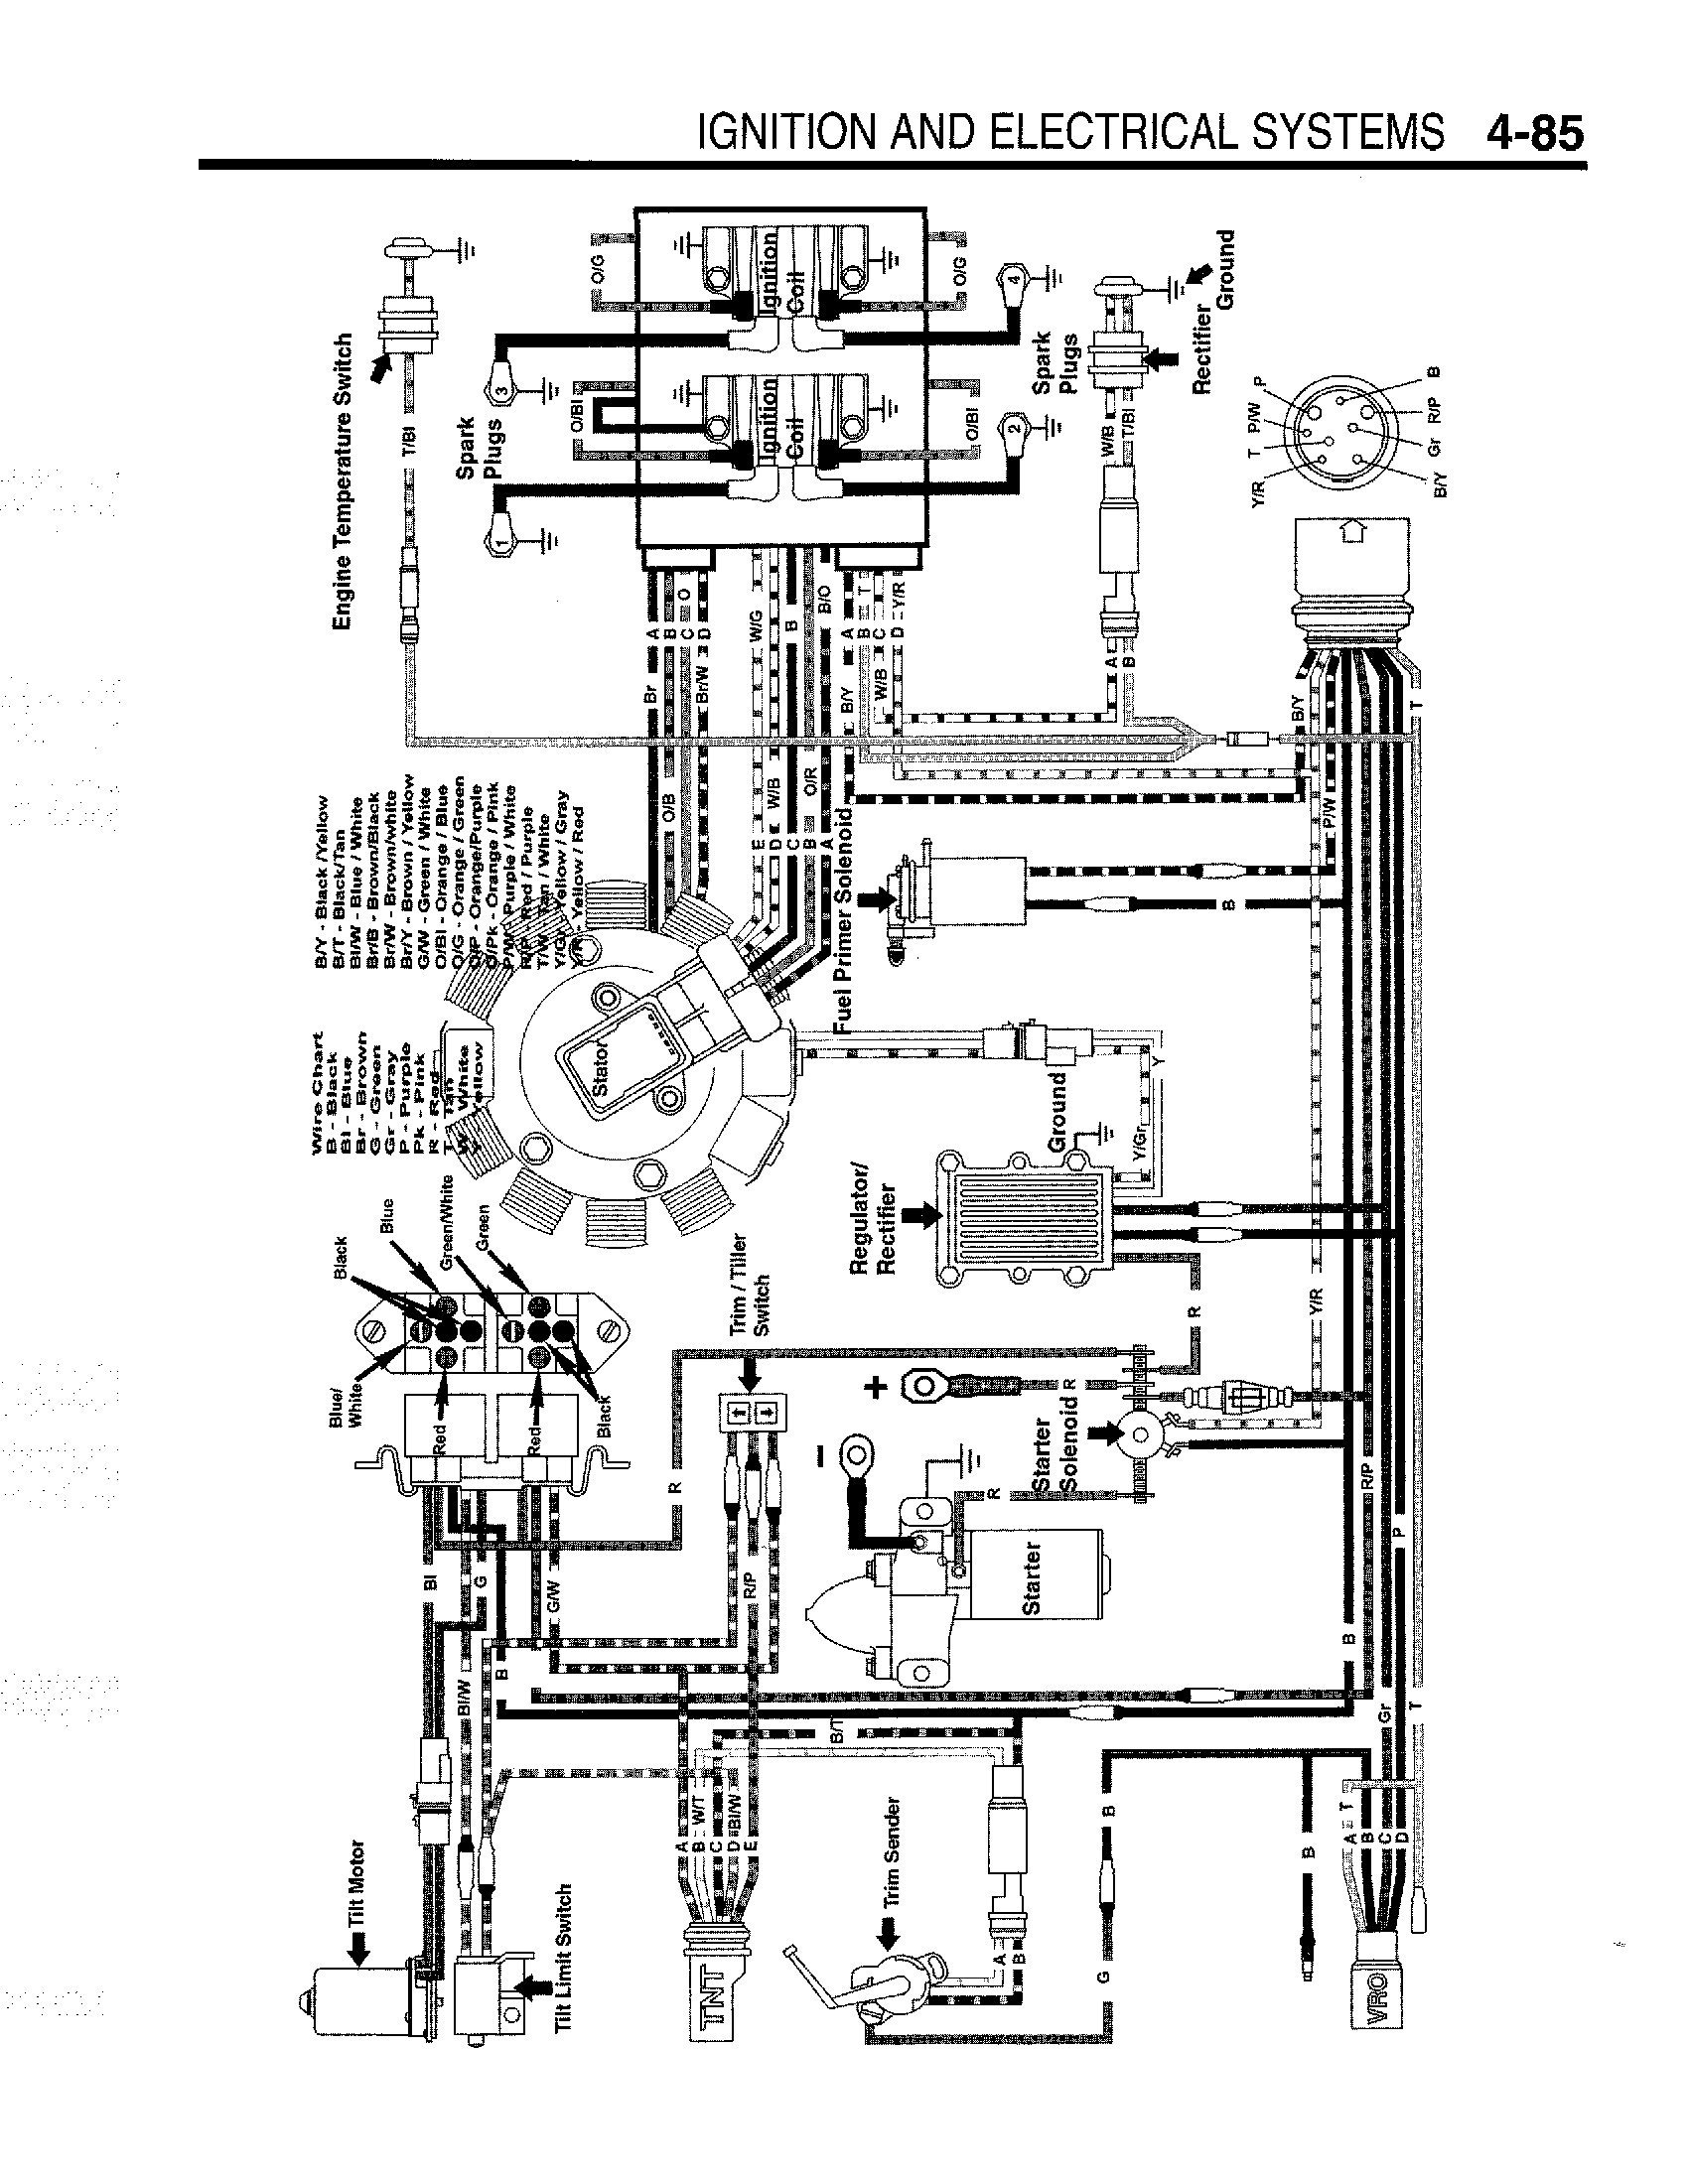 4 hp johnson outboard diagram wiring schematic best wiring library Tachometer Wiring Diagram need proper wire placement for 1997 v4 90hp starter i took pictures rh justanswer johnson